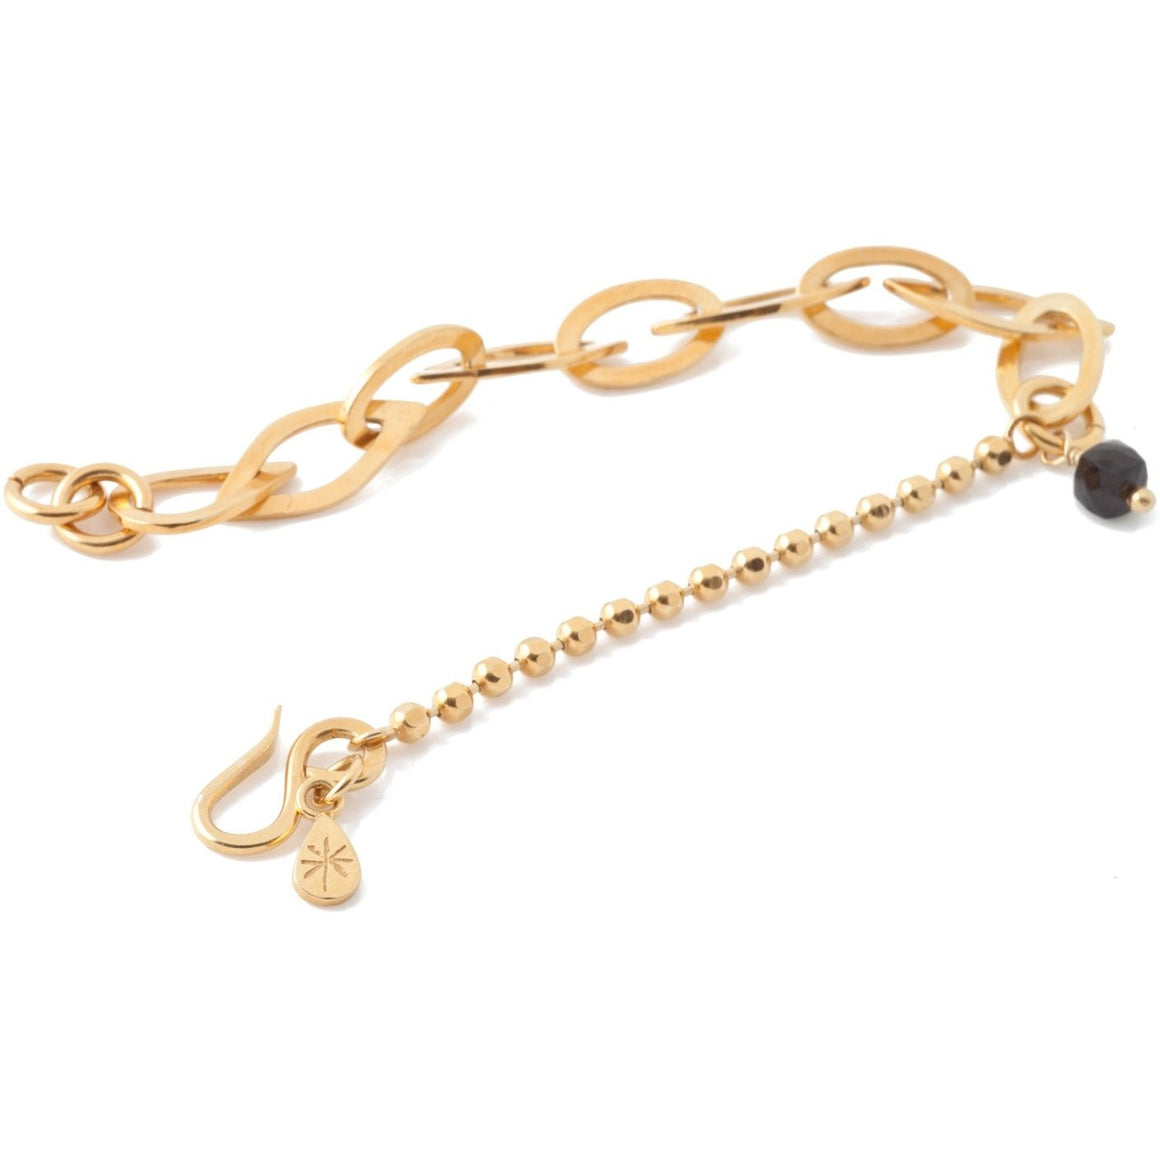 Chain Charm Bracelet in Gold